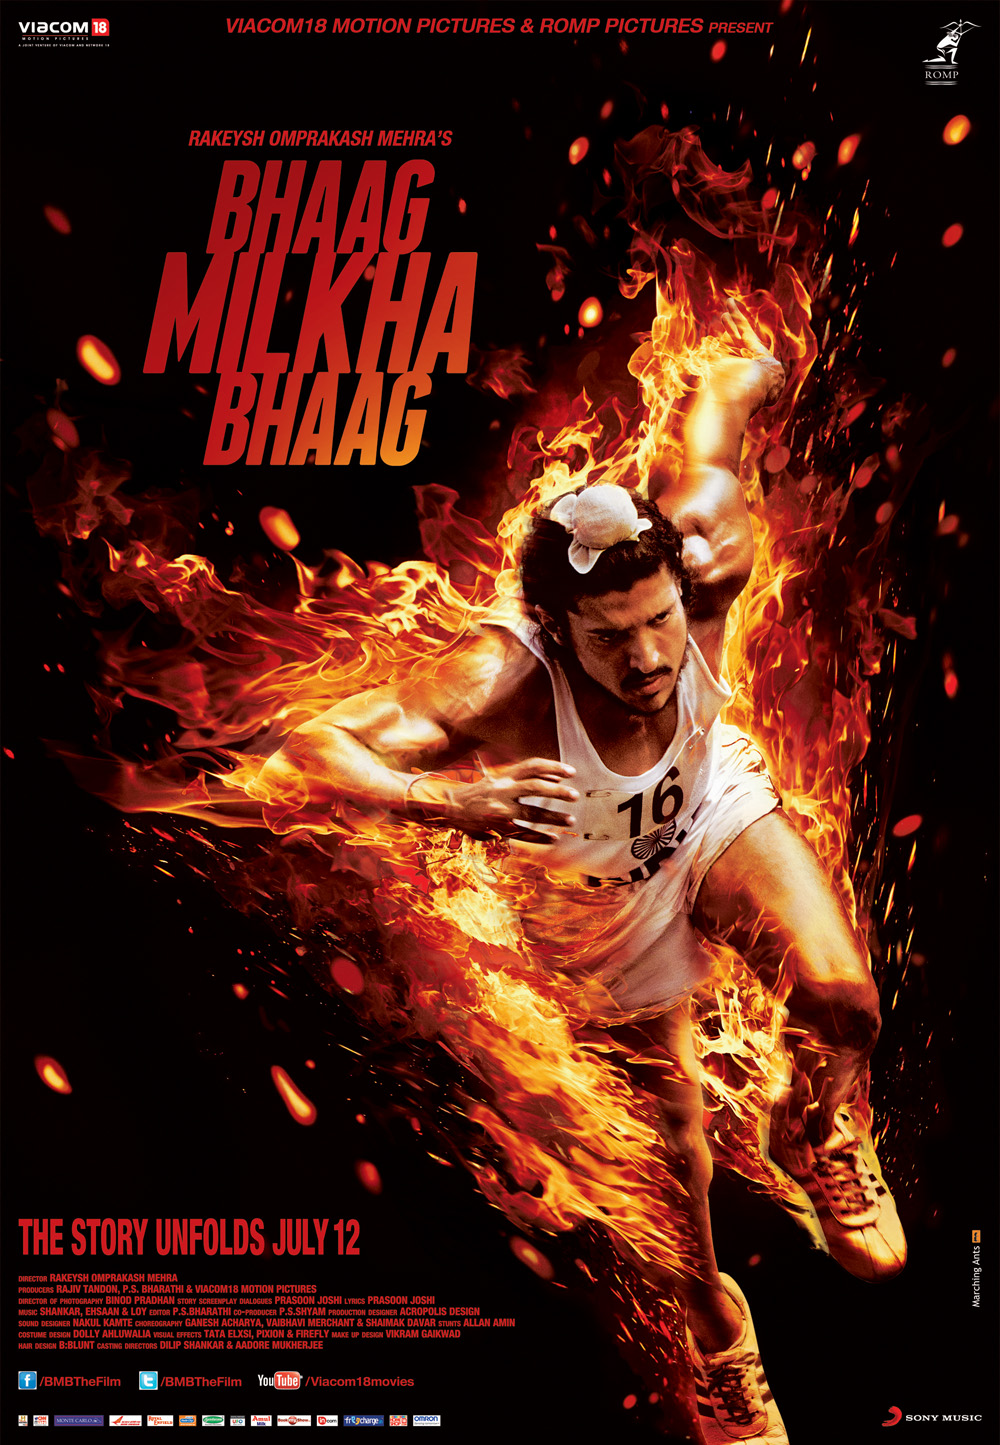 30 x 40 Fire Running Farhan Akhtar on Fire as Milkha Singh!